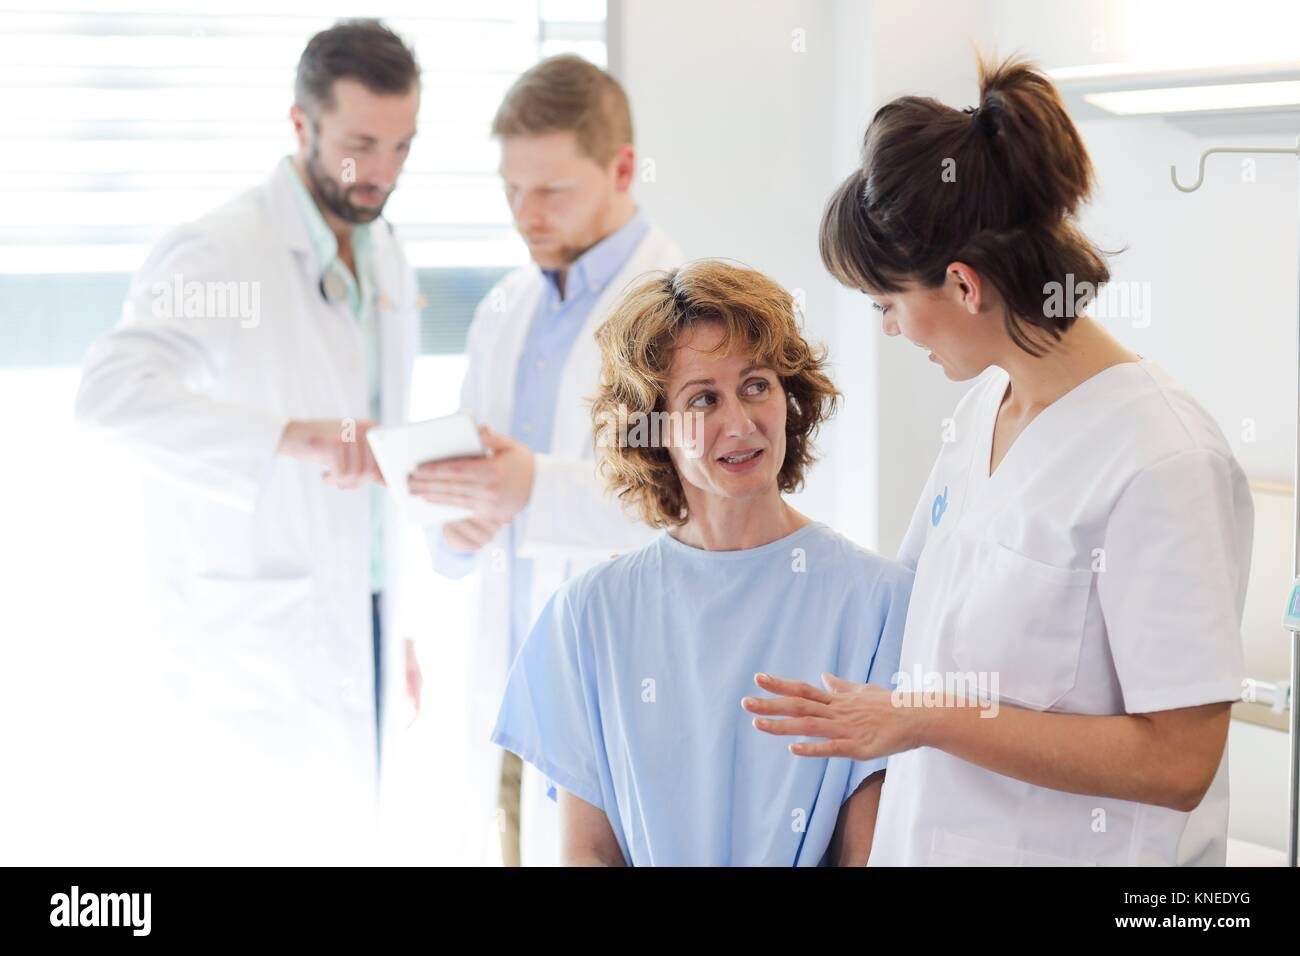 Patient in hospital room attended by a doctor, Hospital - Stock Image